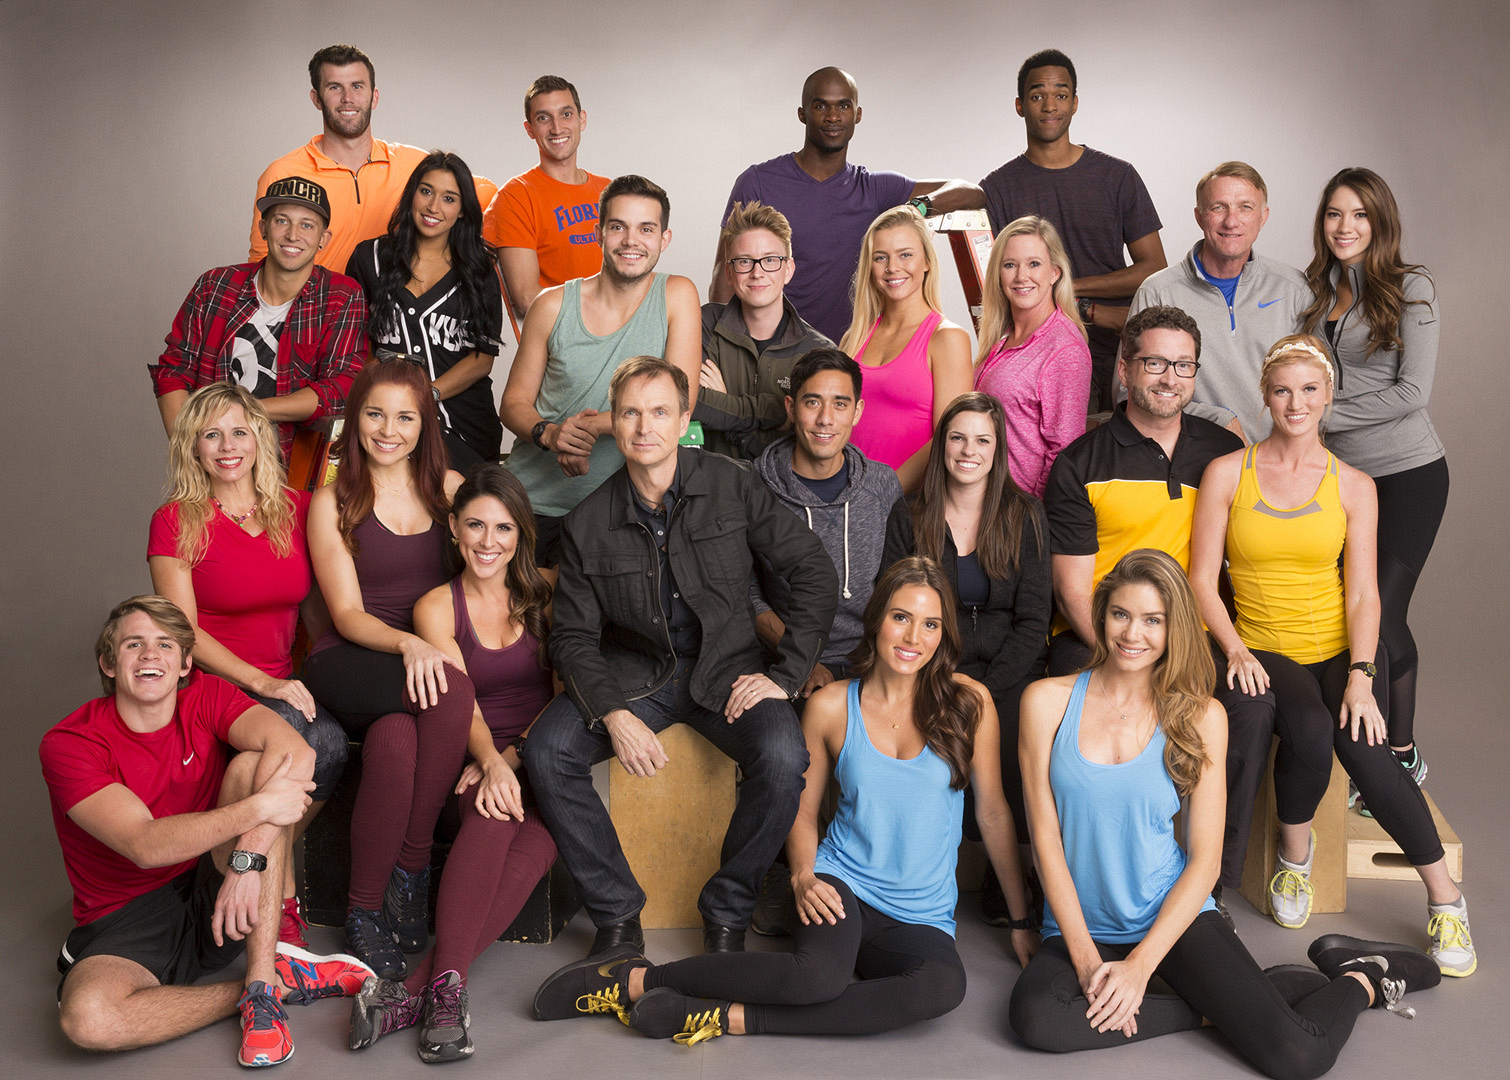 10. The teams from The Amazing Race